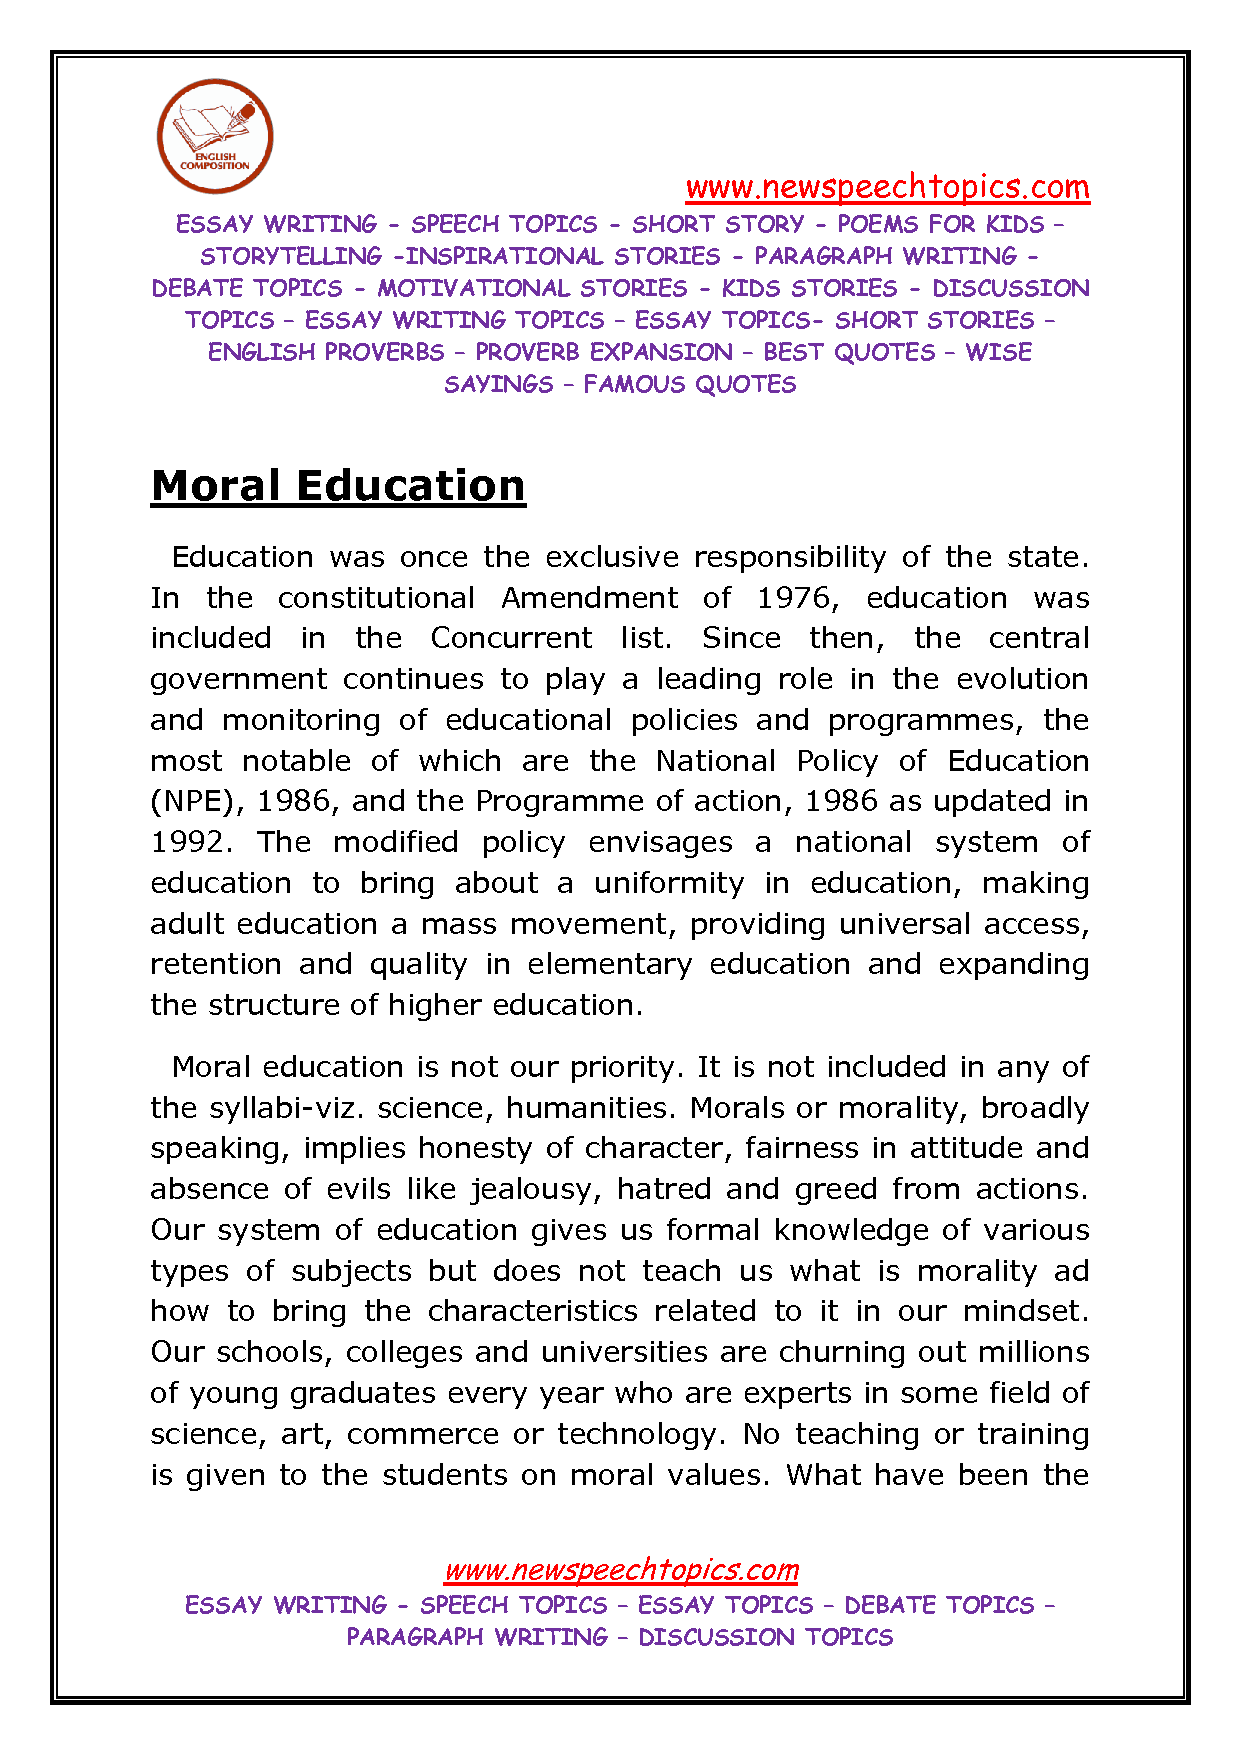 moral and values essay Essay on importance of moral values in human life moral values are the  principles that guide us in every situation throughout our lives.